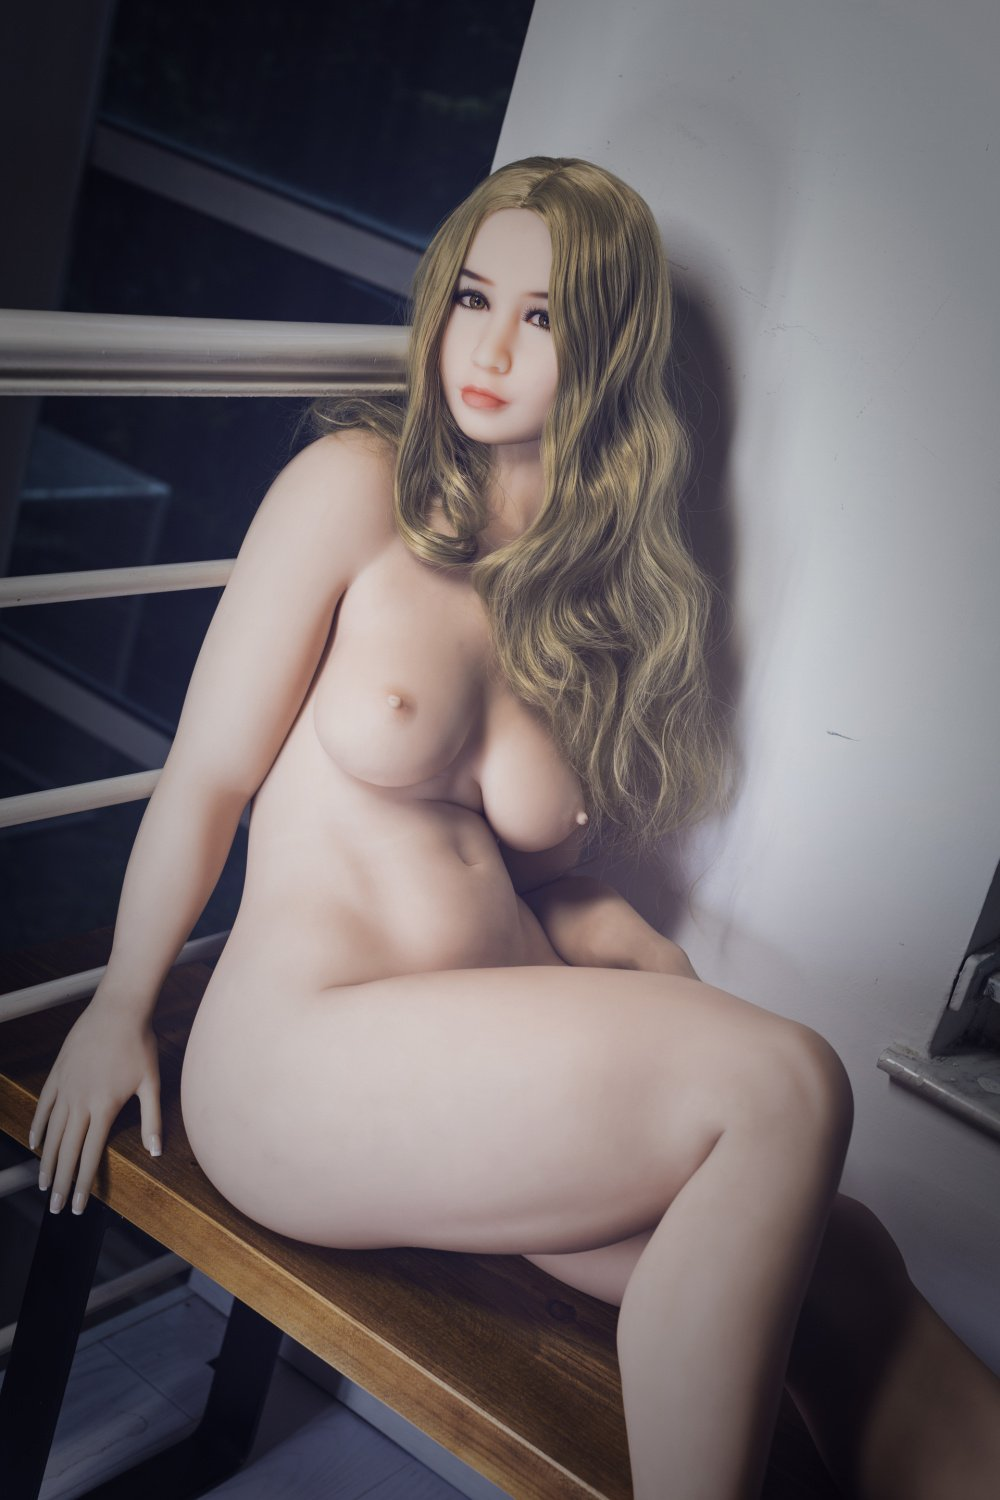 avalon 156cm brown hair curvy flat chested tpe wm bbw sex doll(6)